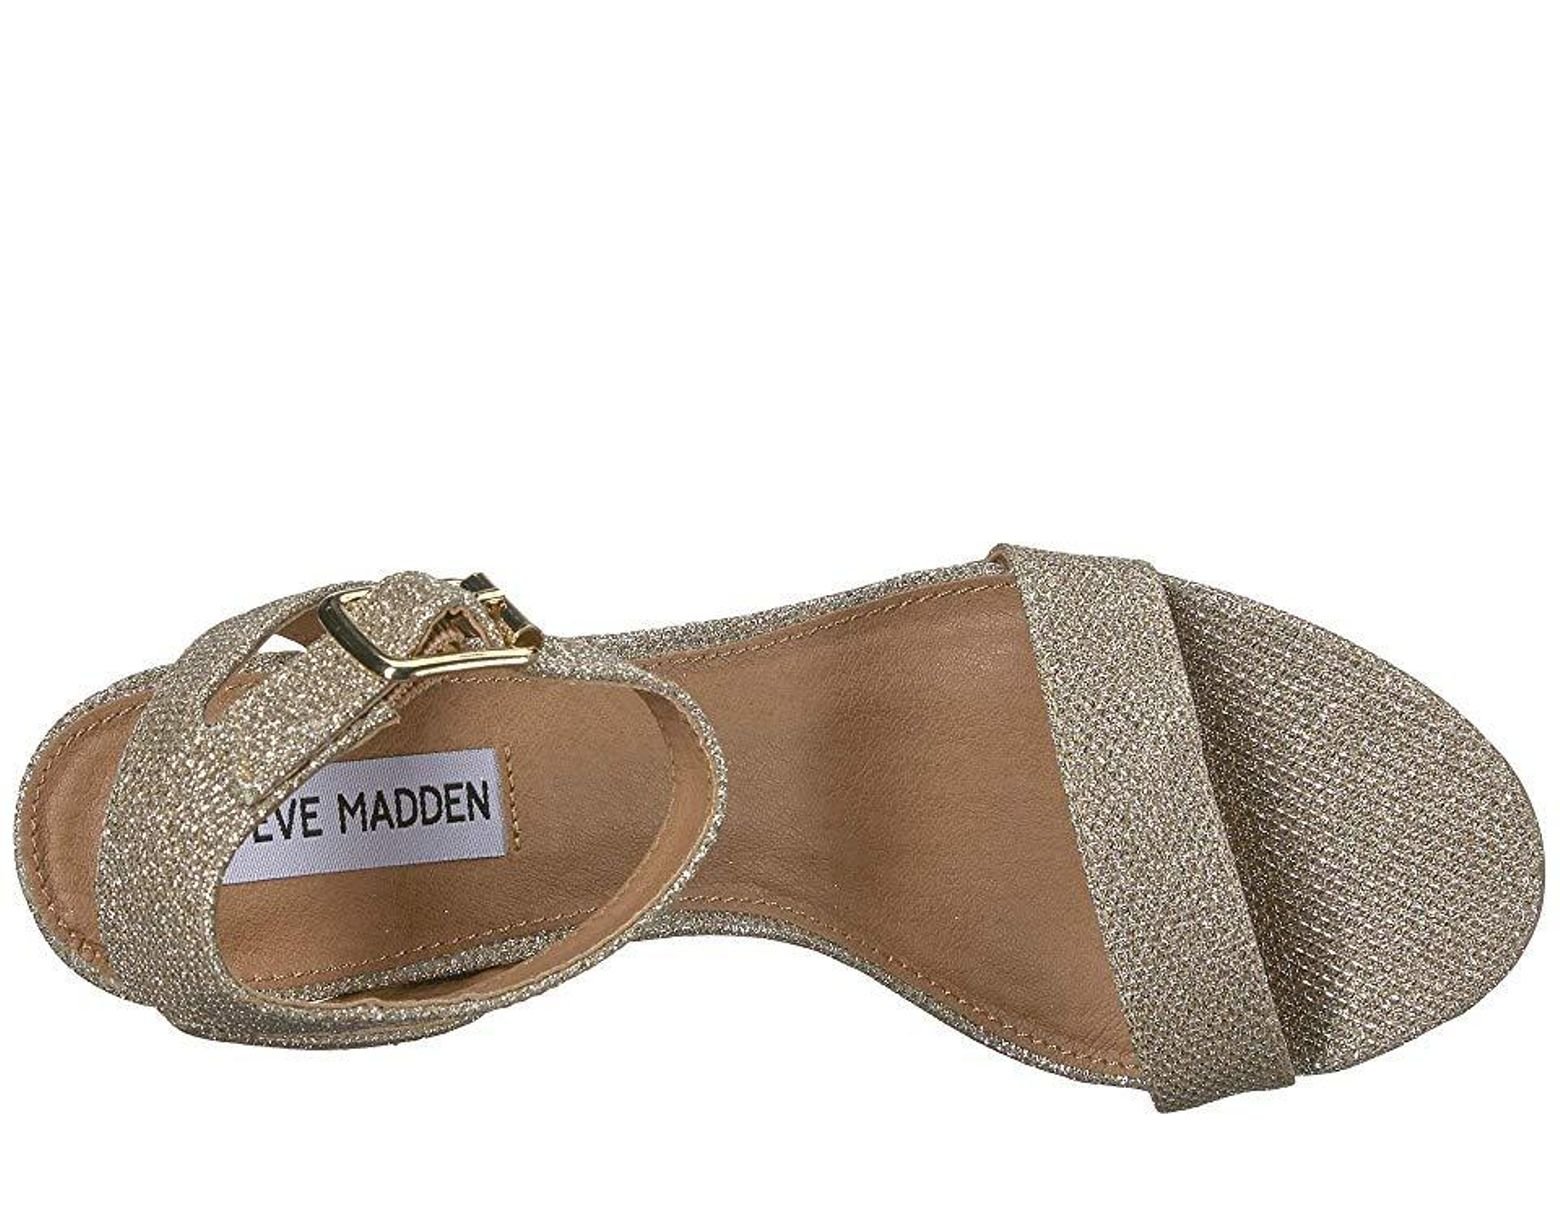 e11fd867e19f Steve Madden Malia (metallic) Shoes in Metallic - Lyst